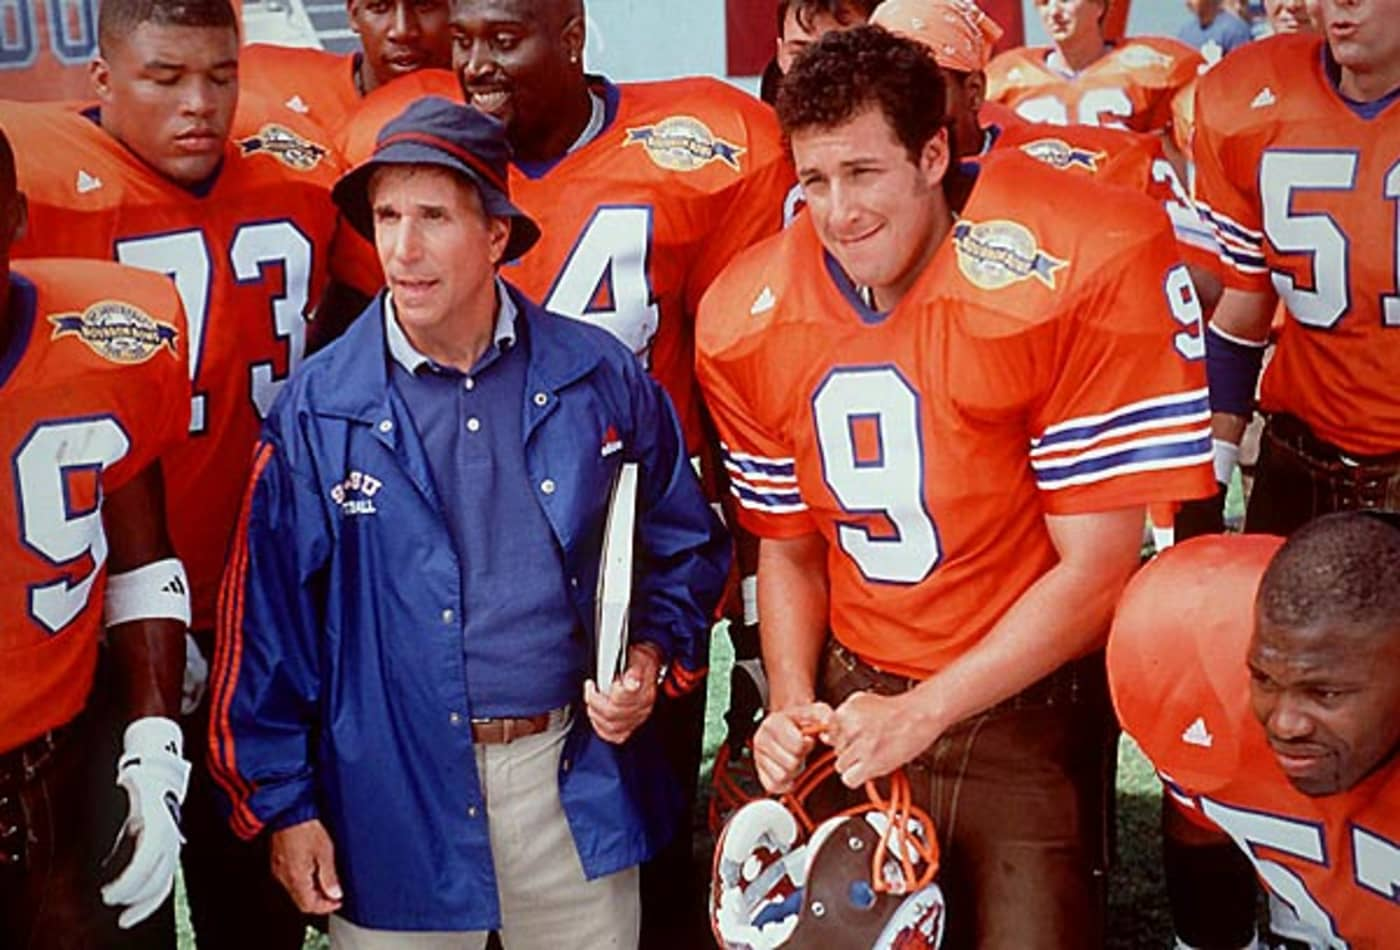 SS_Highest_Grossing_Sports_Movies_Waterboy.jpg